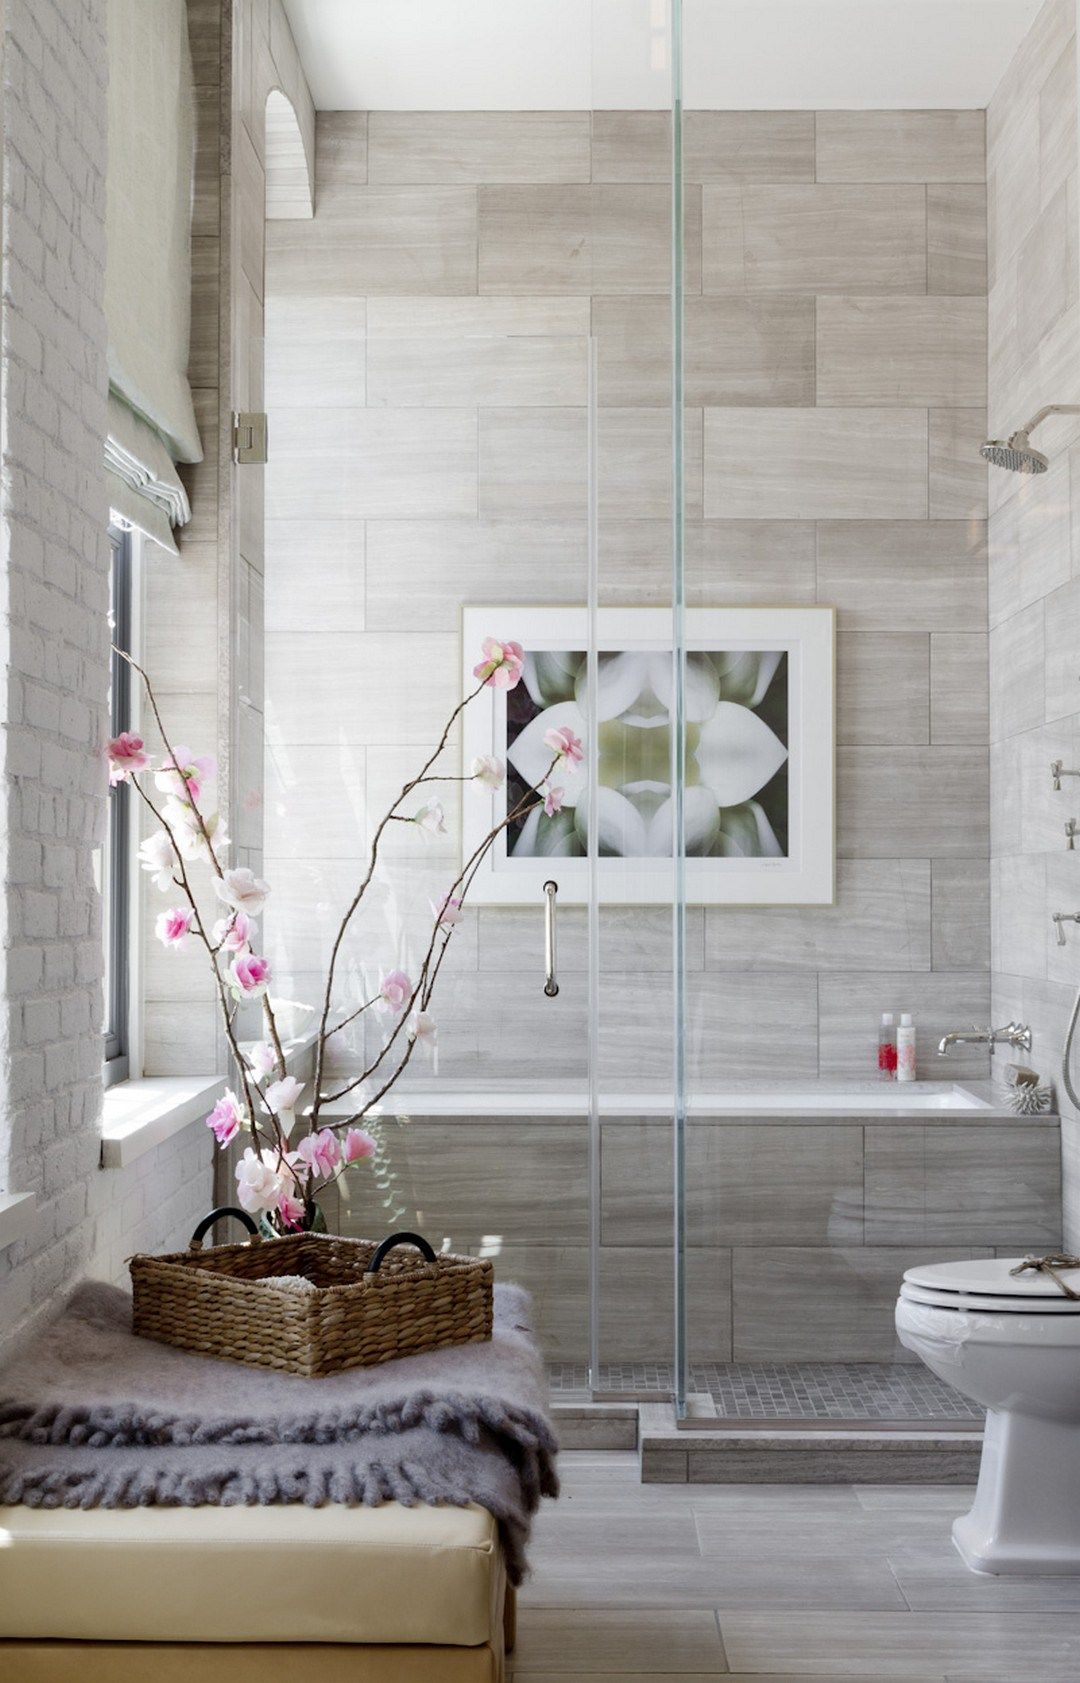 99 small bathroom tub shower combo remodeling ideas 14 - Bathroom Tub And Shower Designs